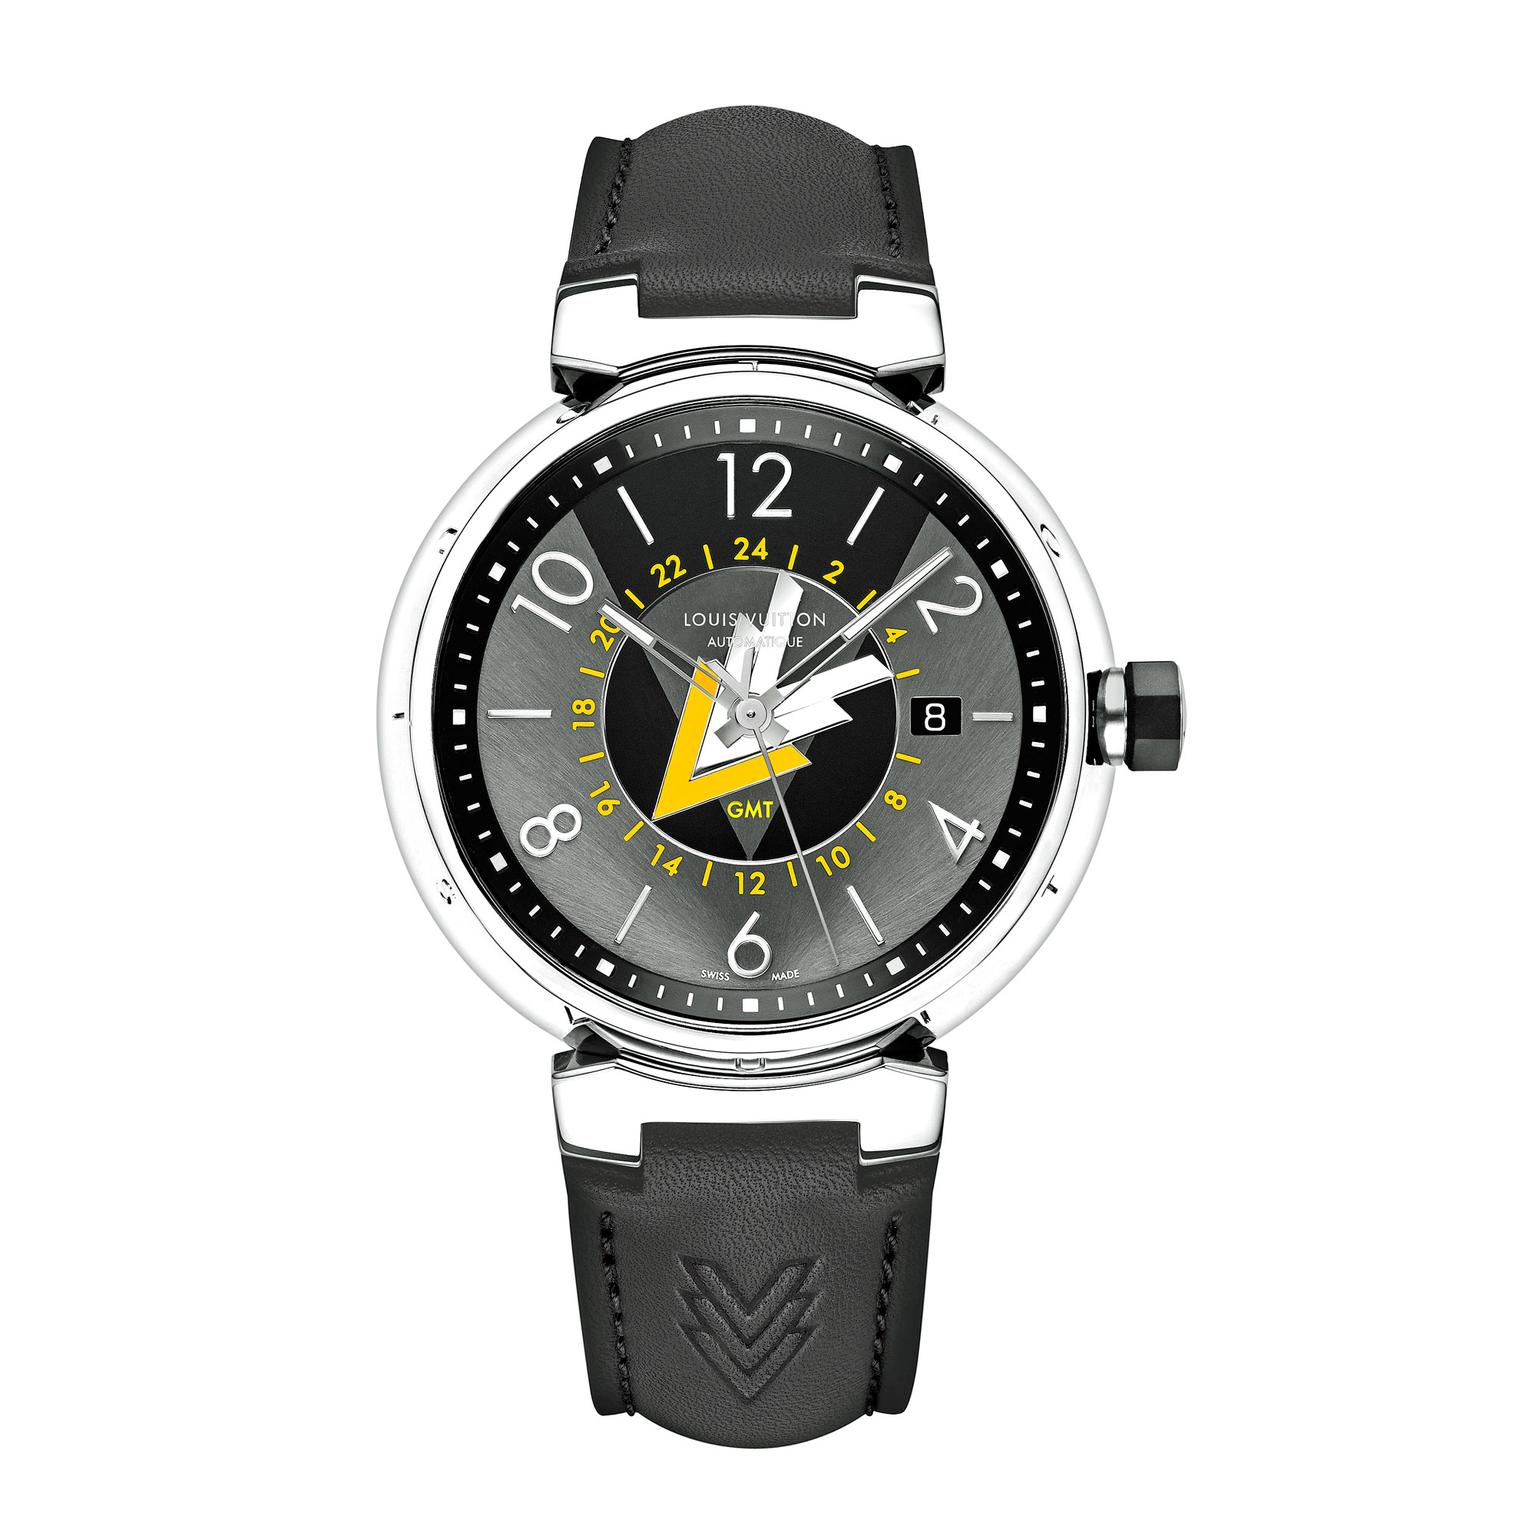 Louis Vuitton Tambour VVV GMT